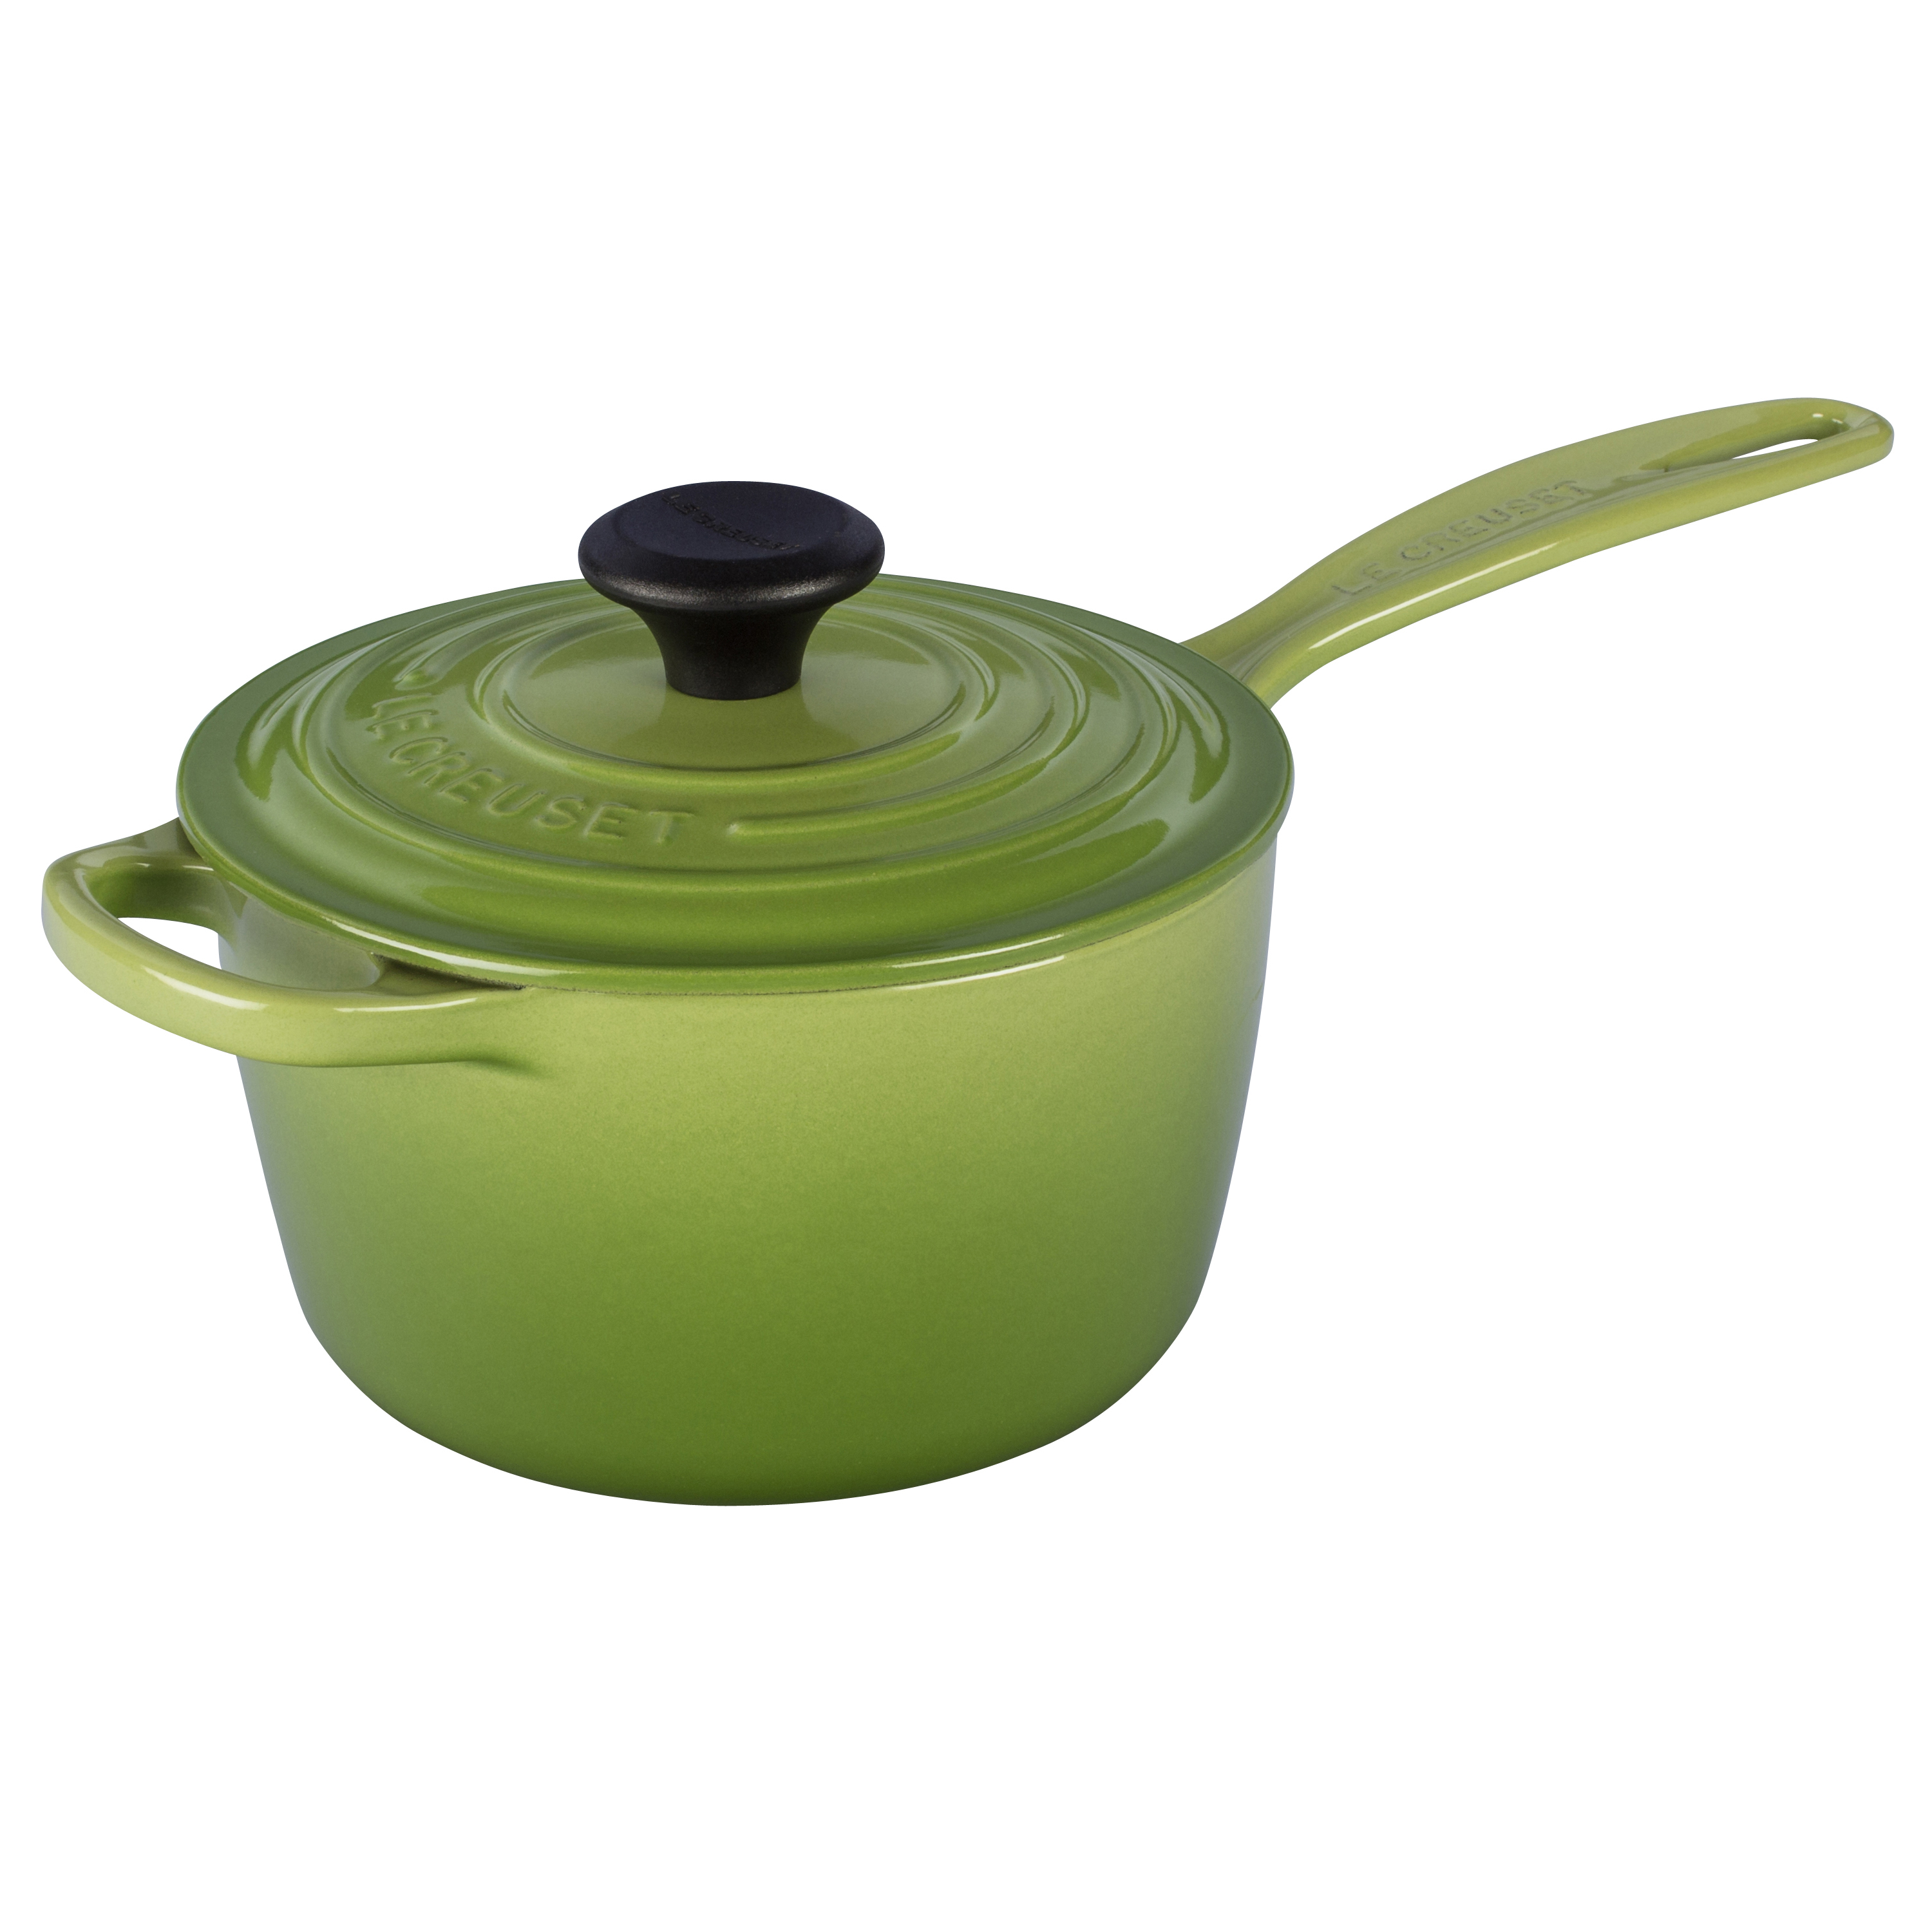 Le Creuset Signature Palm Cast Iron 1.75 Quart Saucepan